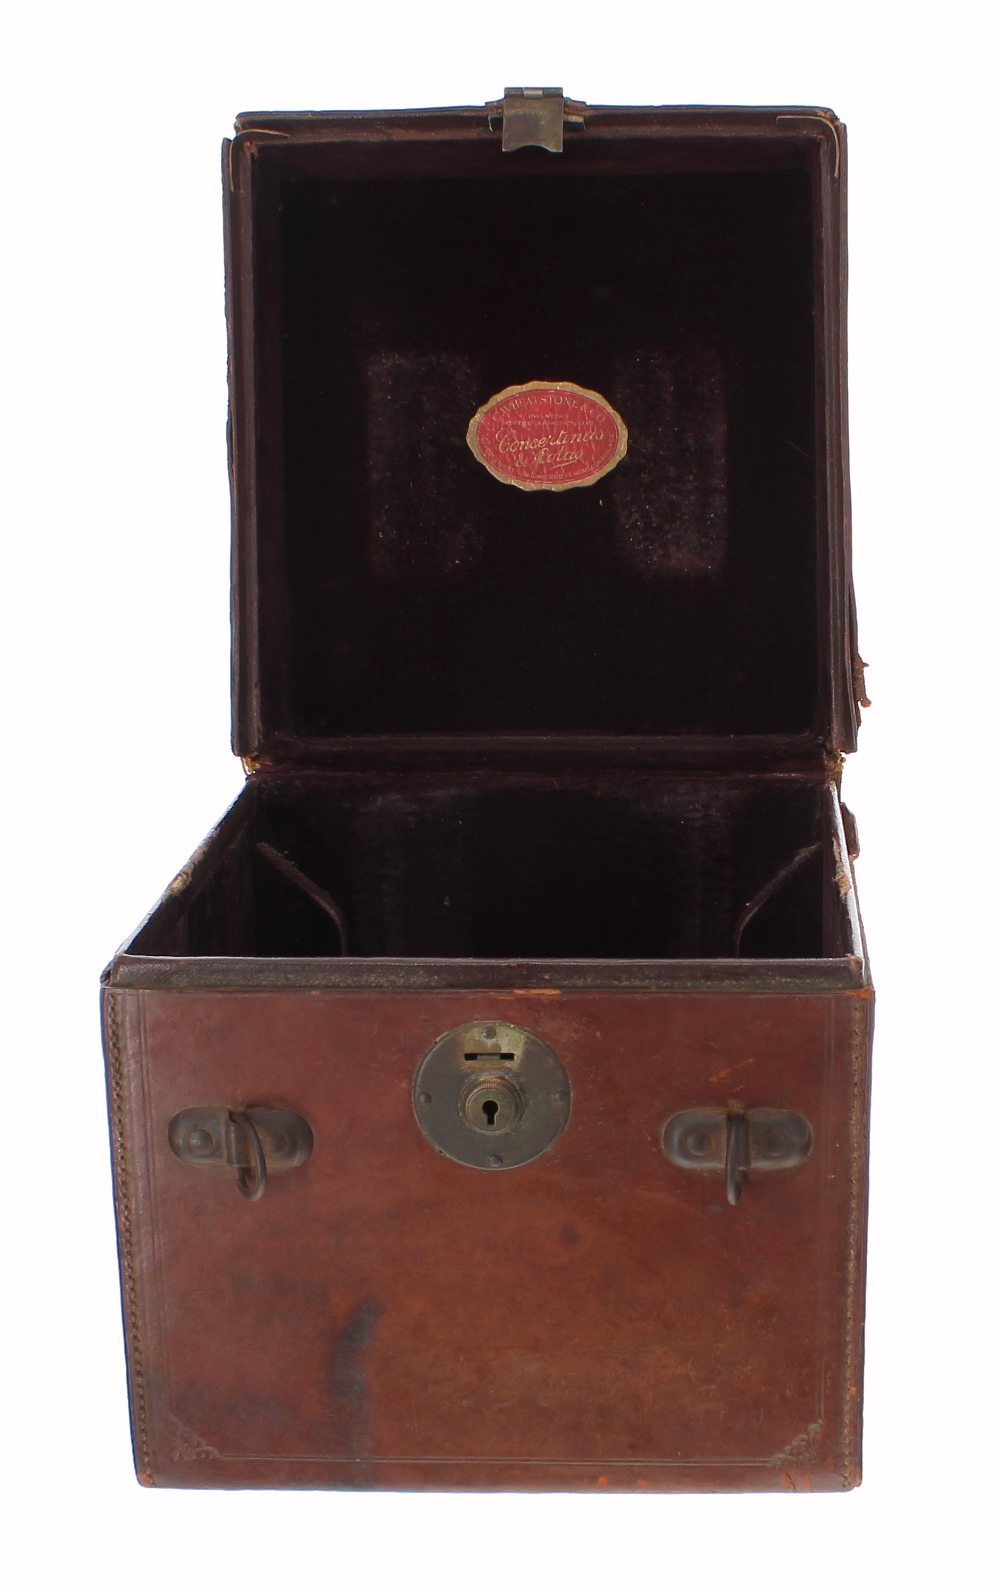 Lot 1218 - Fine and rare C. Wheatstone & Co specially commissioned large concertina with Jeffries fingering,